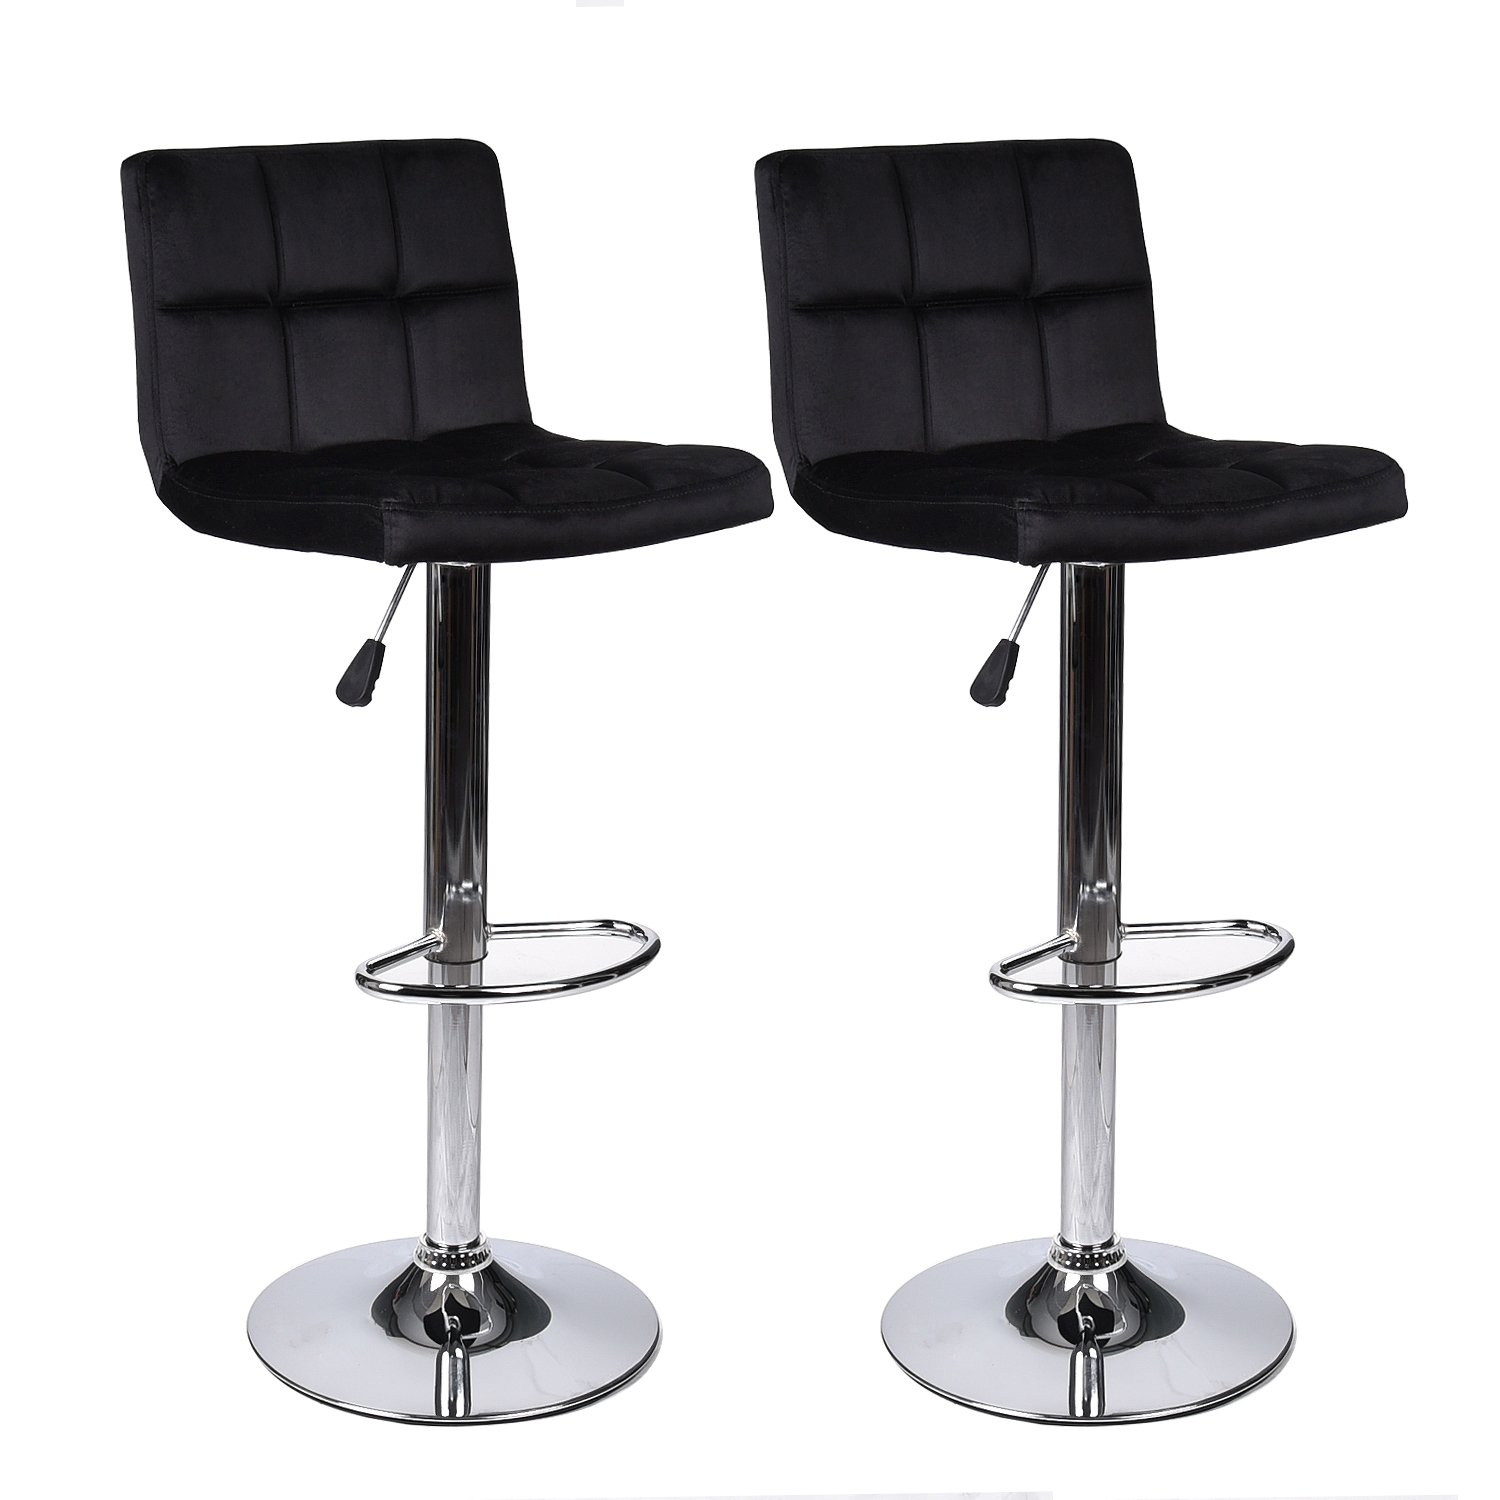 PULUOMIS Modern Square Flannel Adjustable Bar Stools With Back,Set of 2,Counter Height Swivel Stool Black